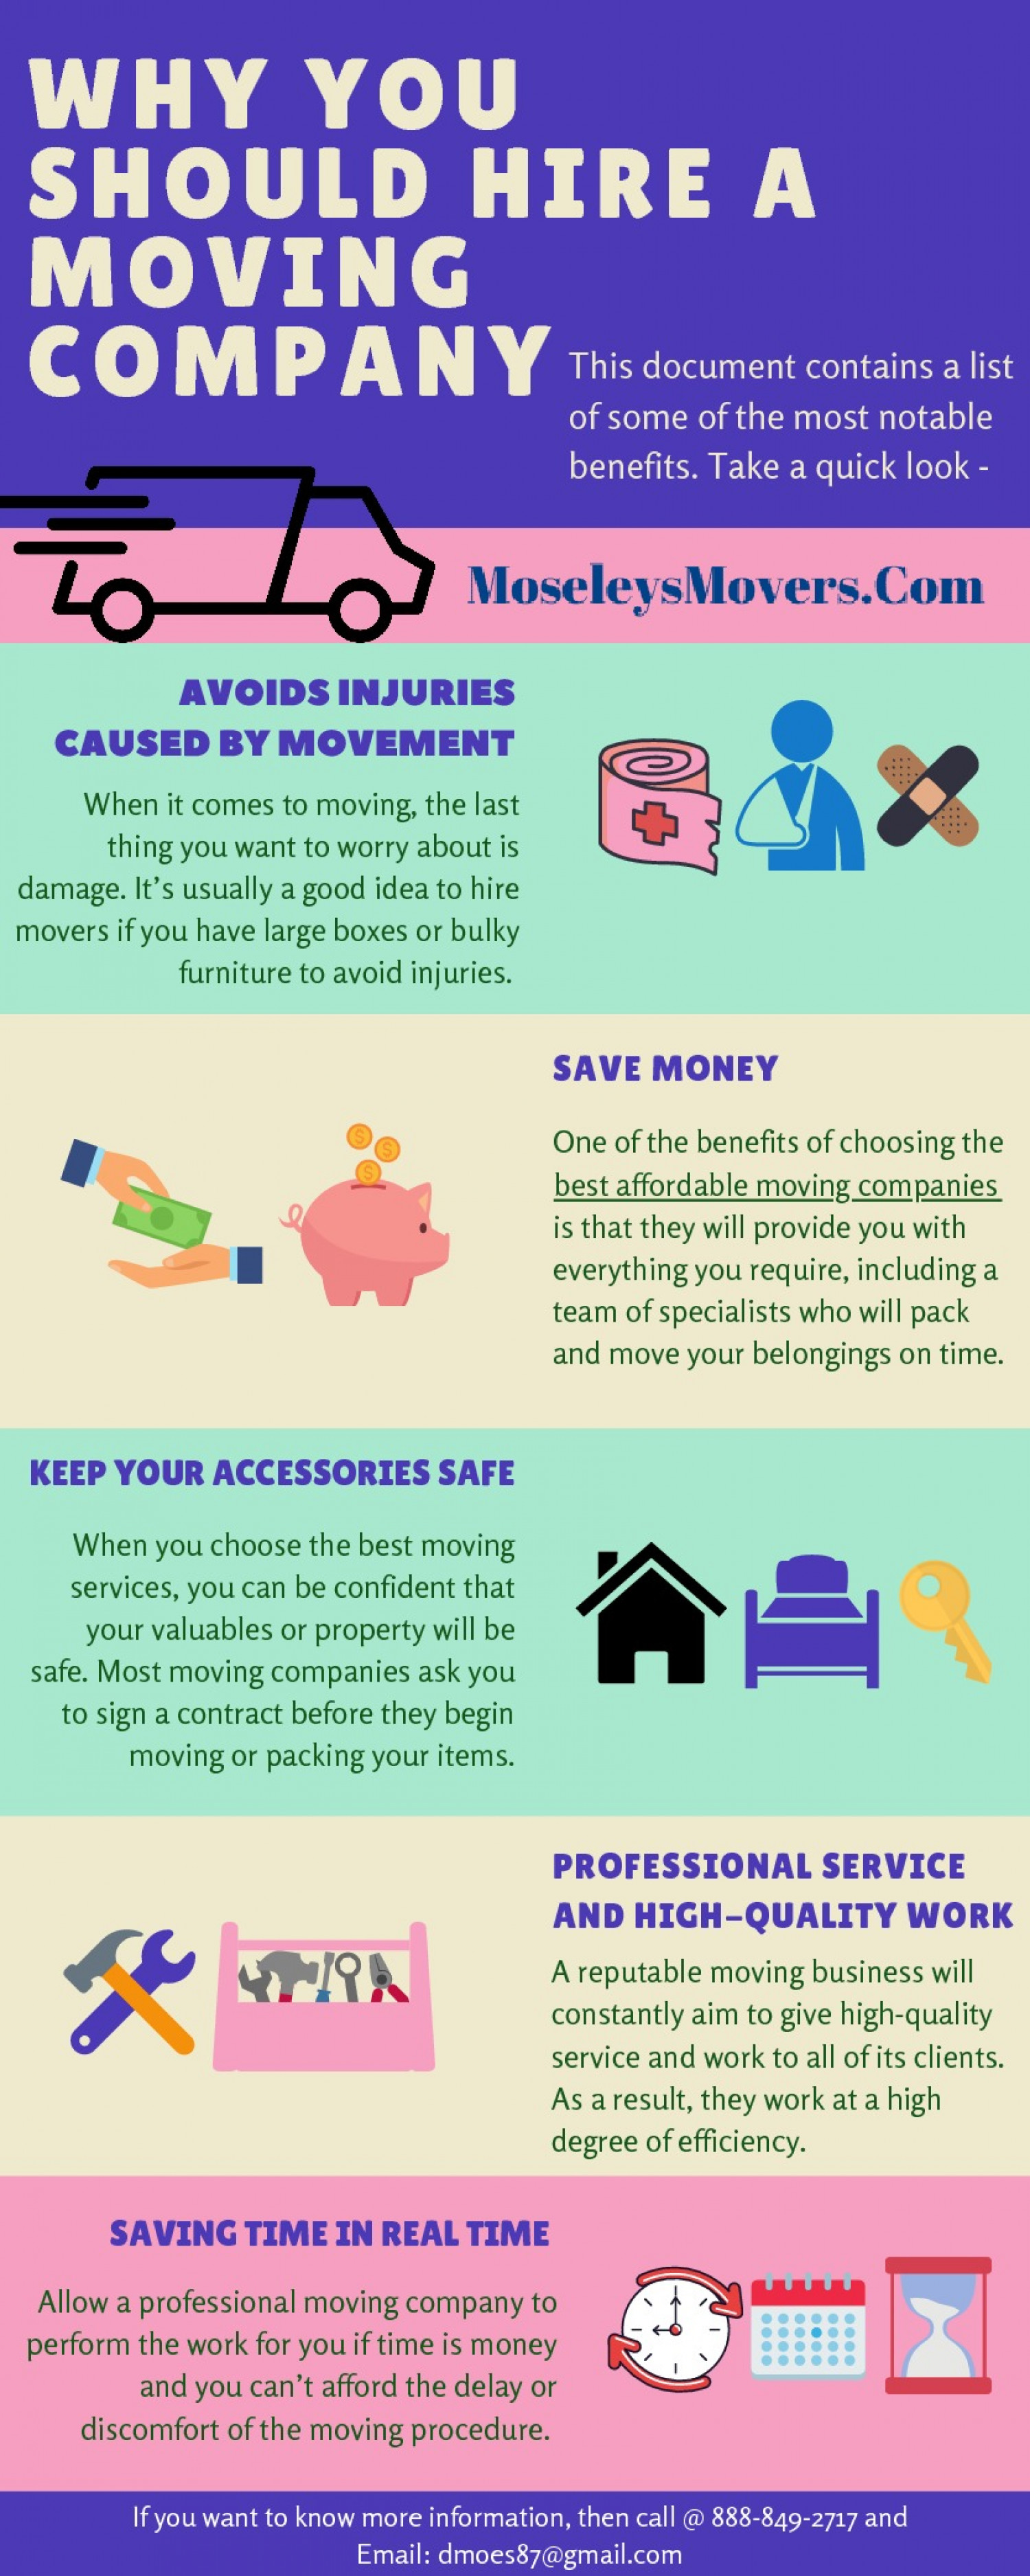 Why You Should Hire a Moving Company Infographic